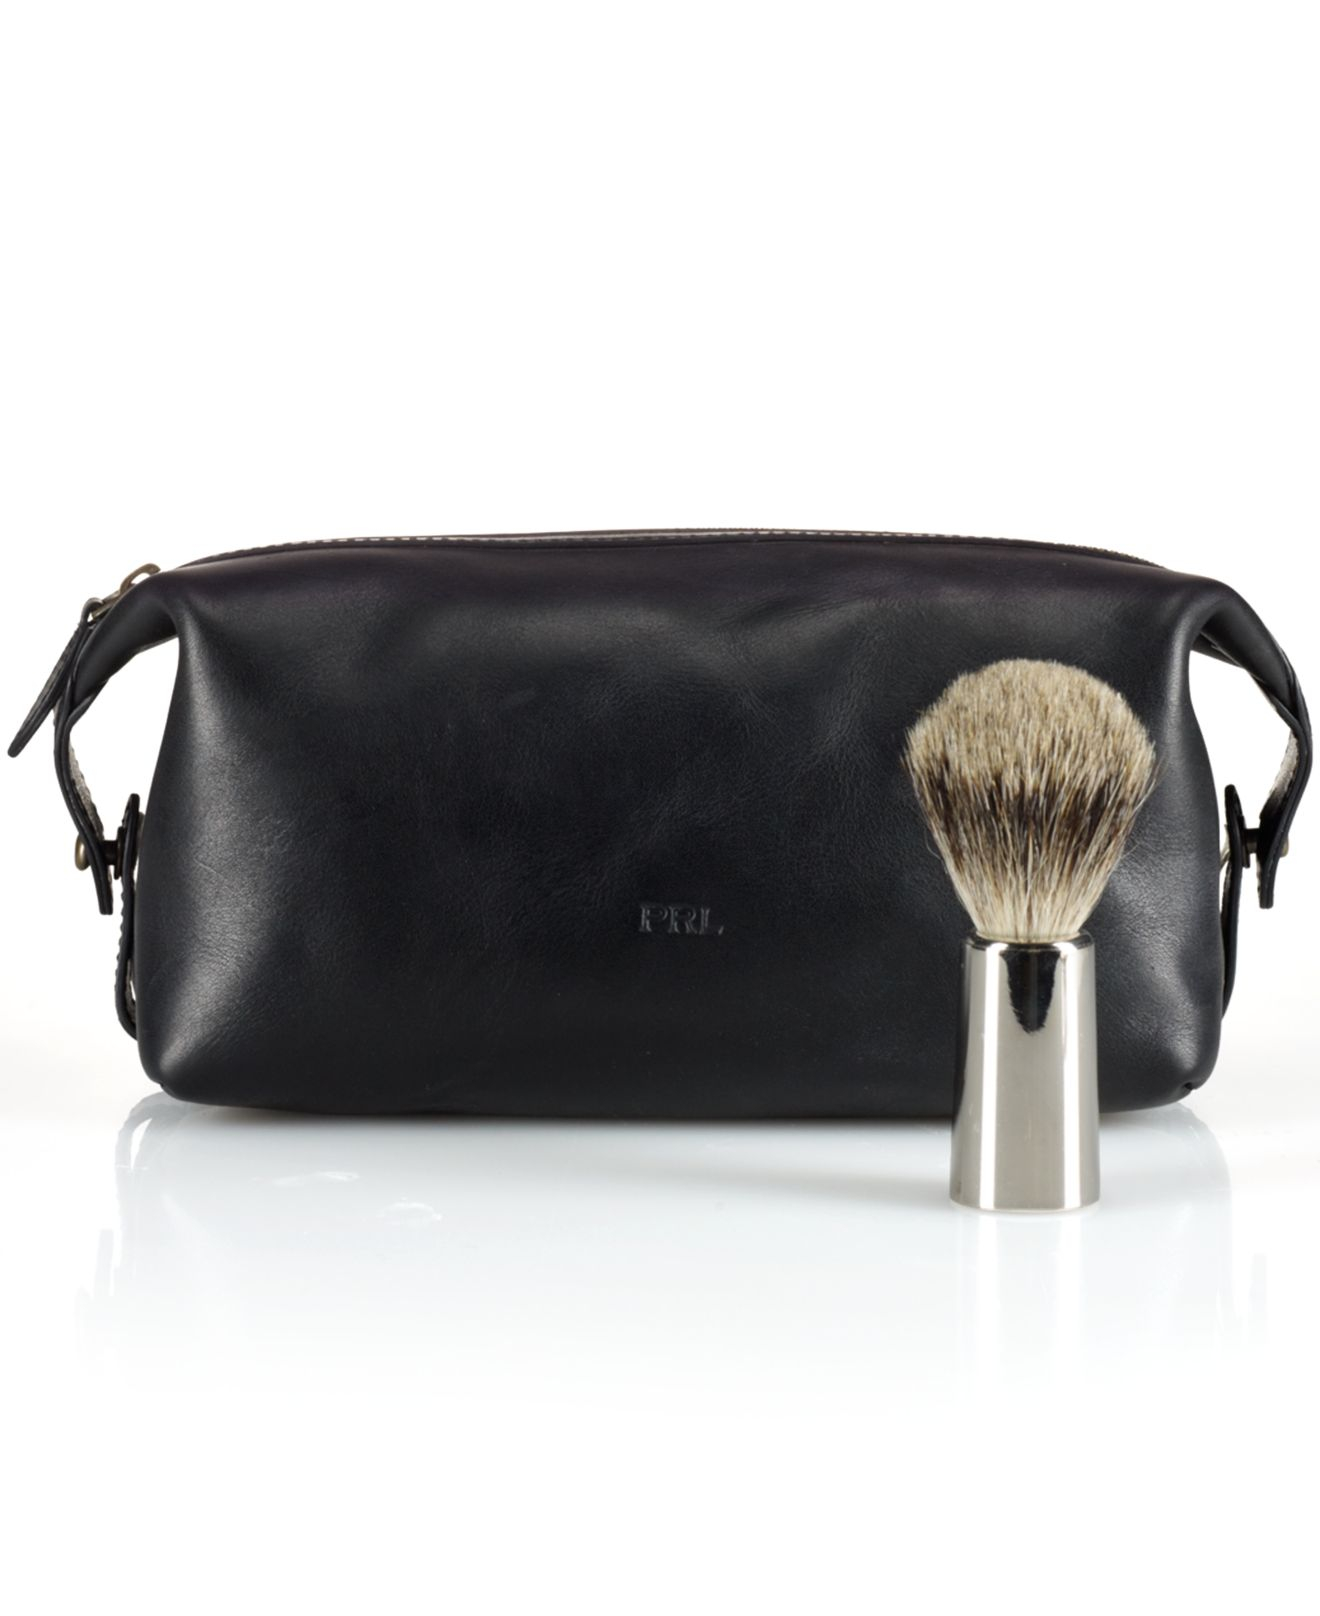 Lyst - Polo Ralph Lauren Leather Shaving Kit in Black for Men 38cd1a08b2280